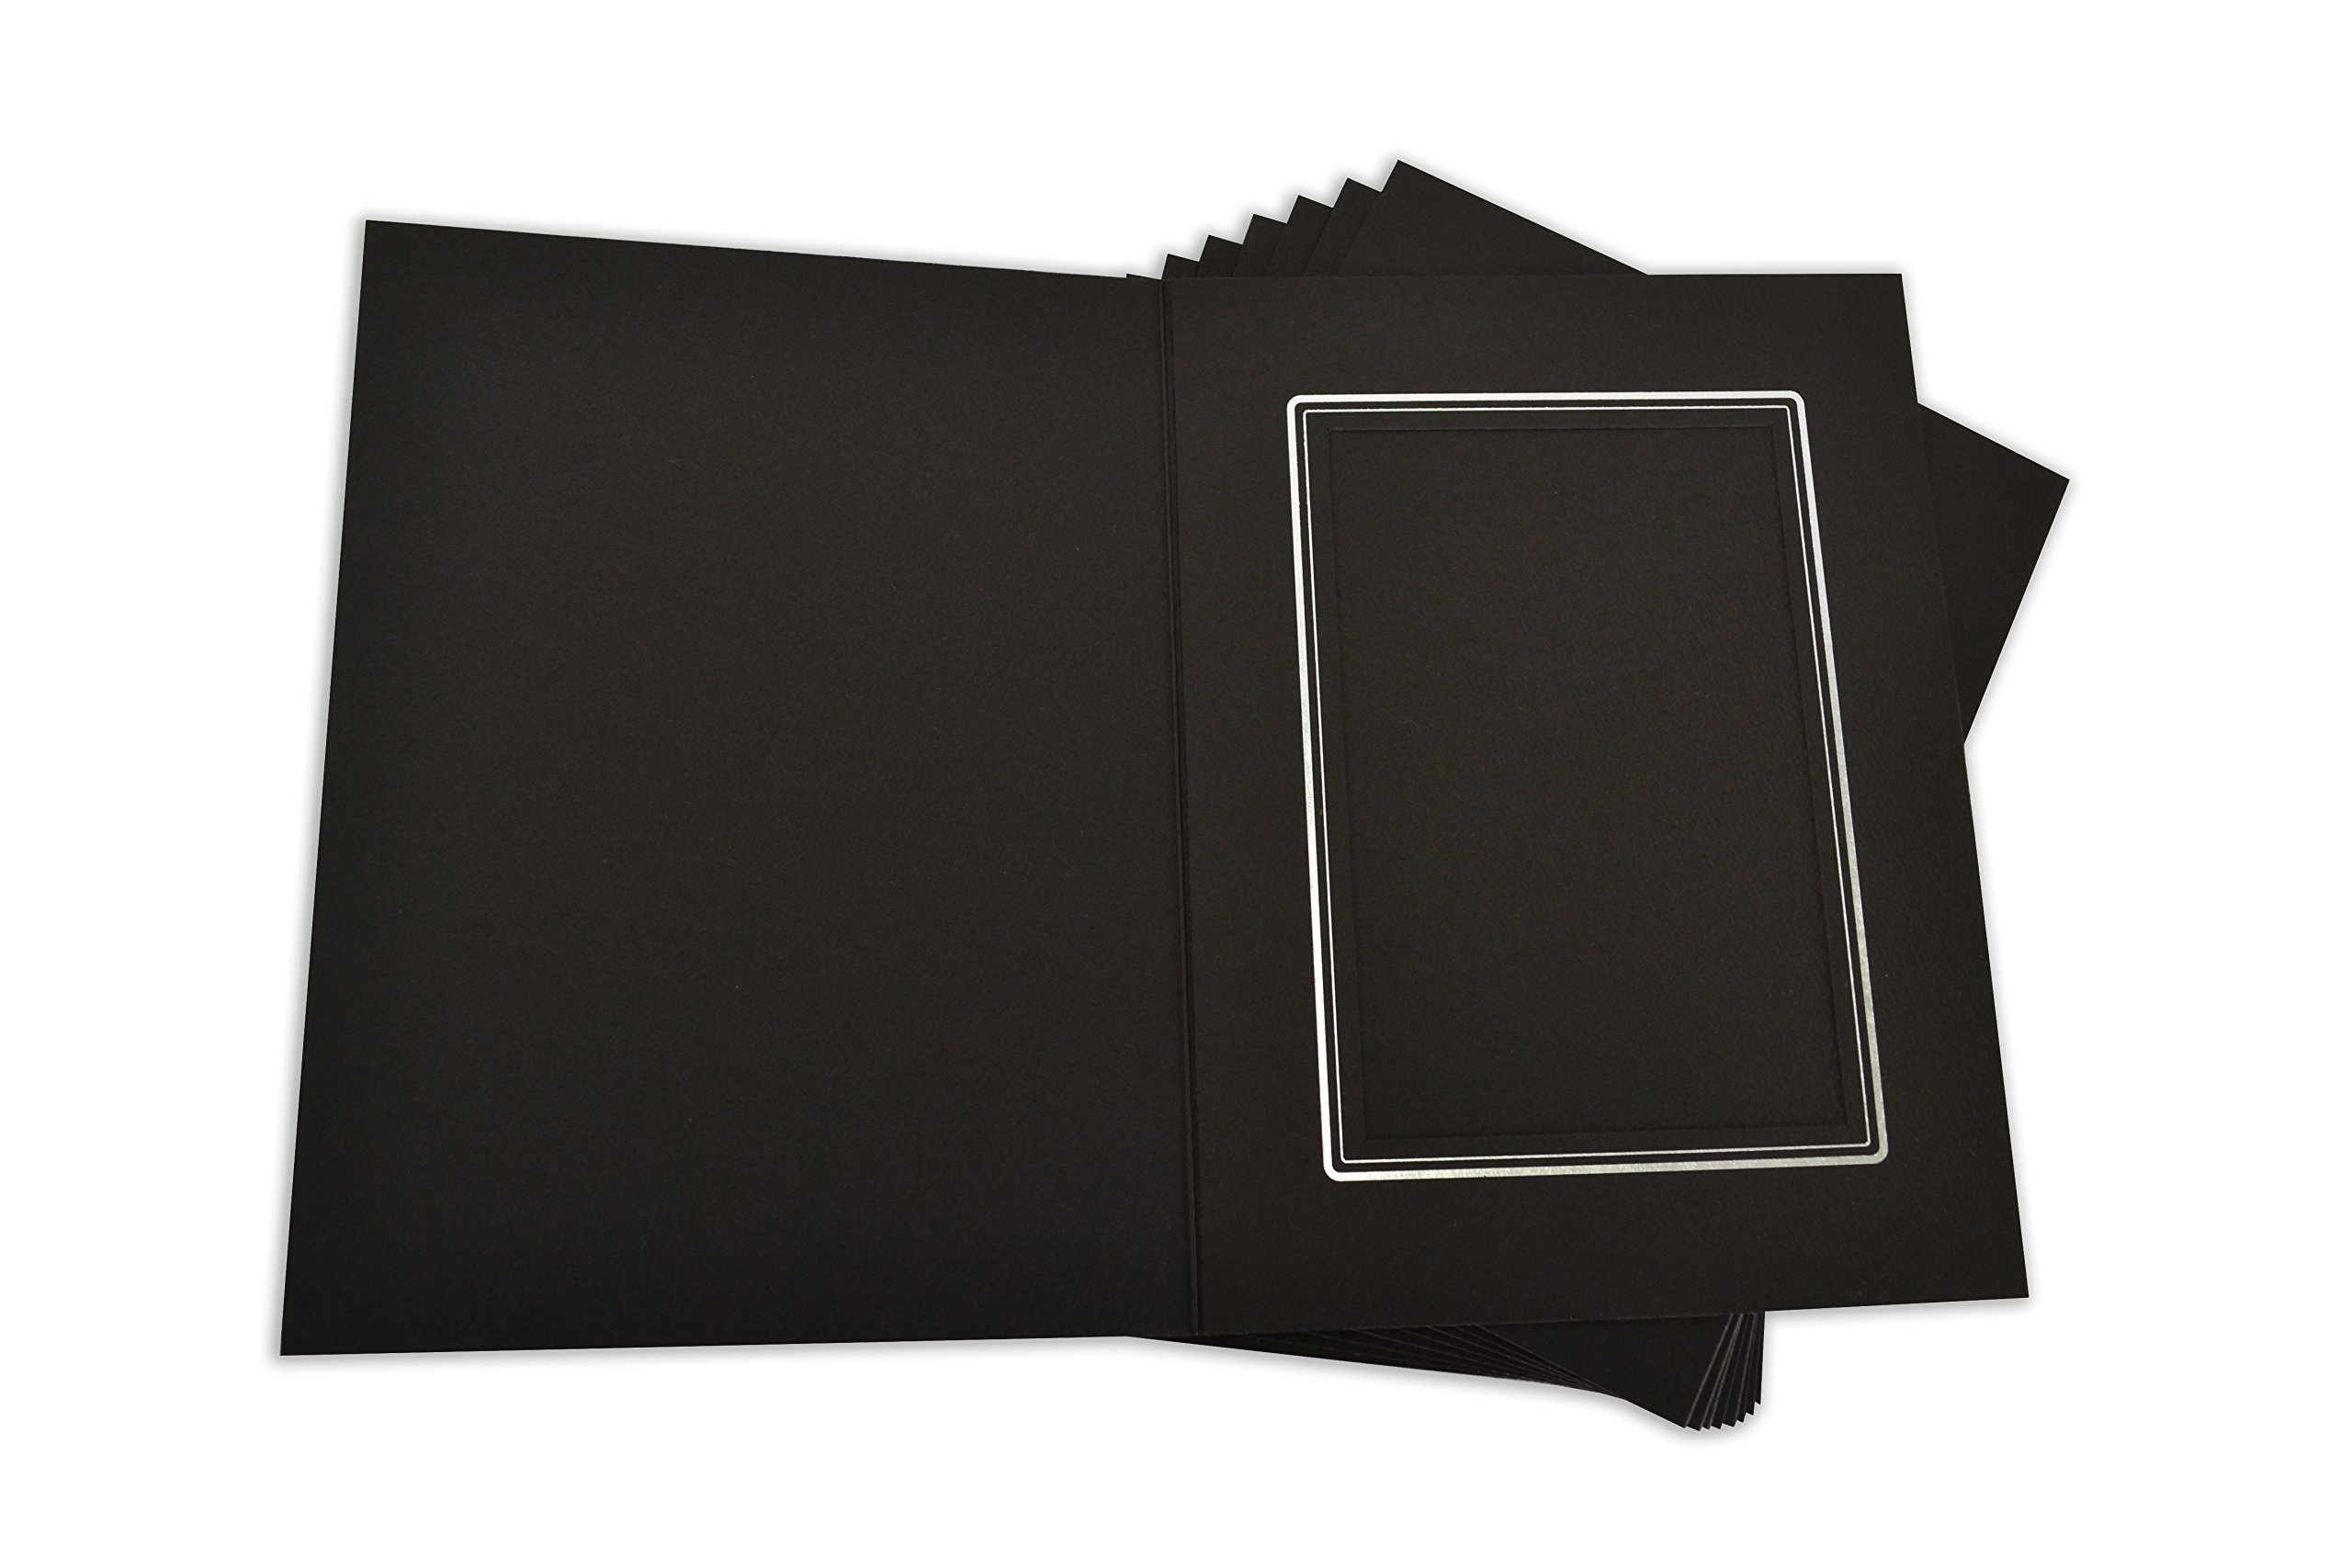 Golden State Art, Cardboard Photo Folder for a 4x6 Photo (Pack of 100) Black Color by Golden State Art (Image #4)